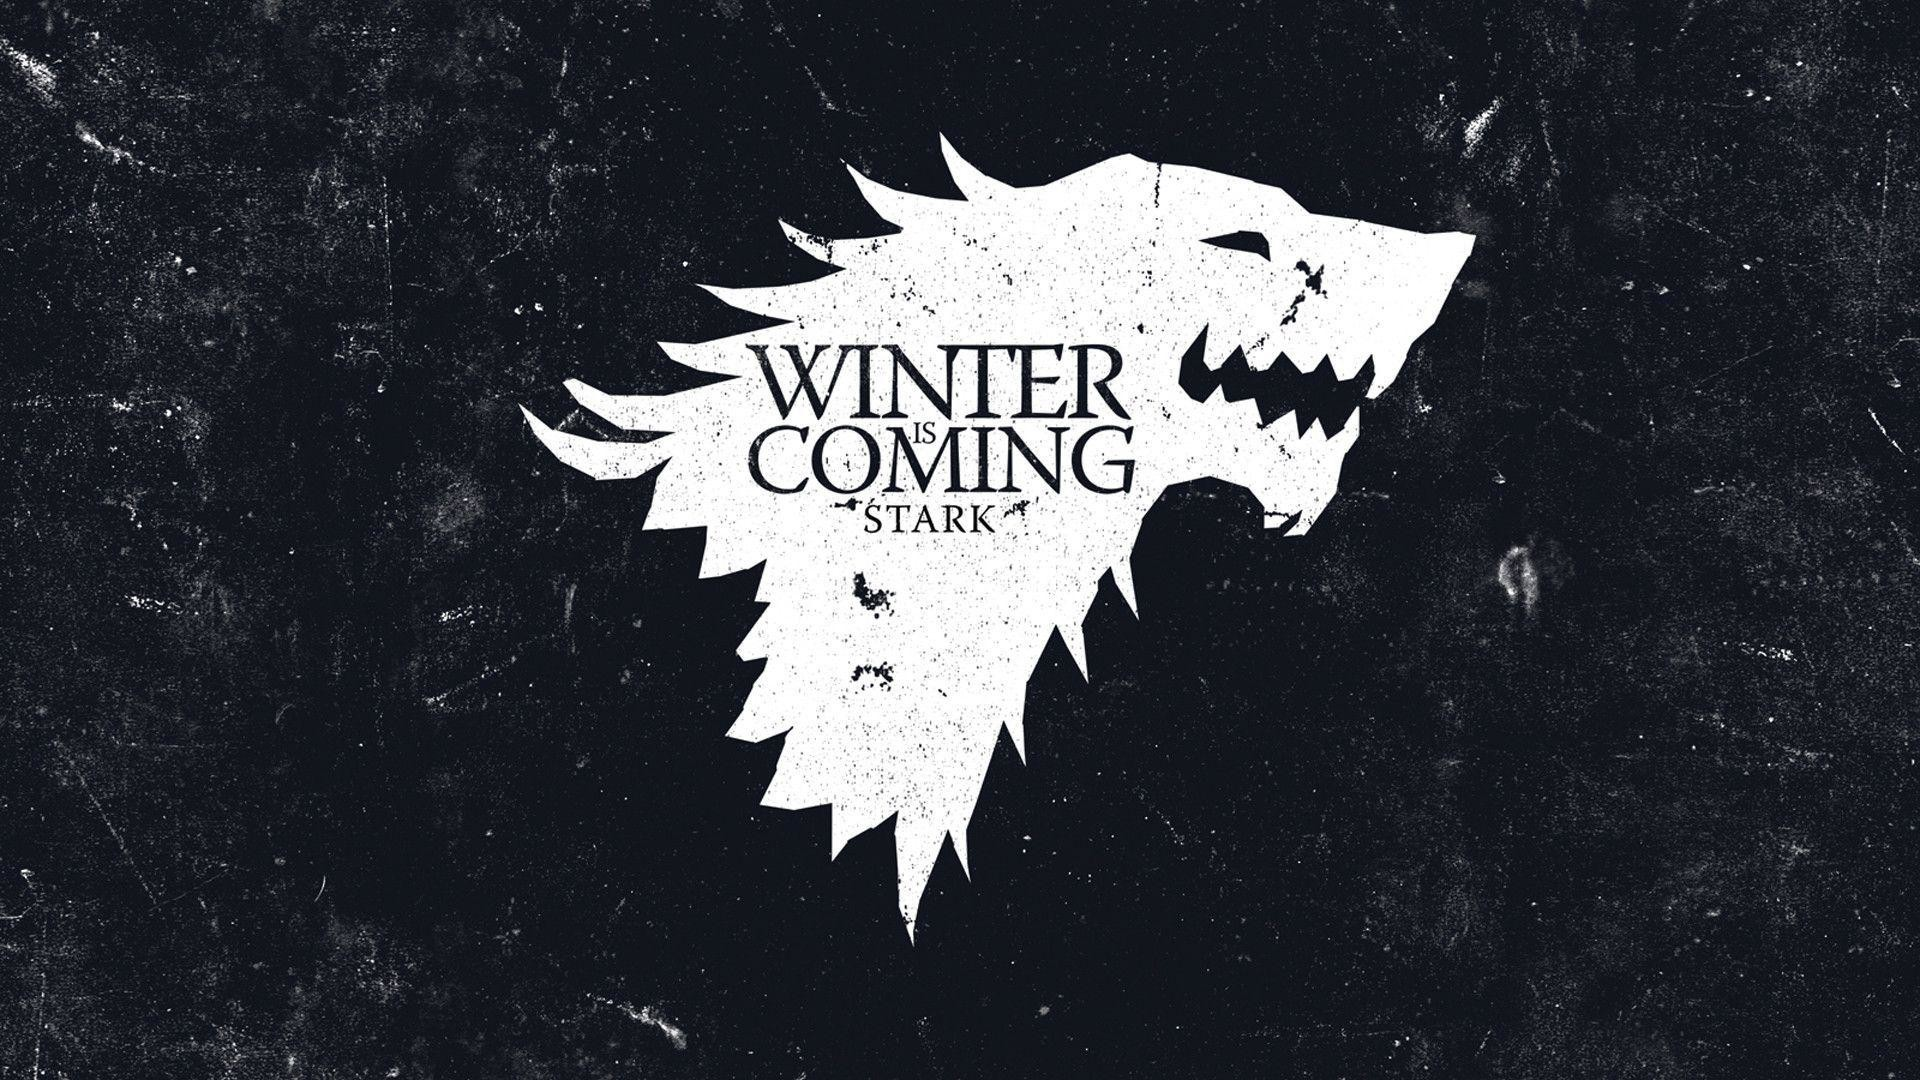 Res: 1920x1080, House Stark Wallpaper 145712 High Definition Wallpapers | Suwall.